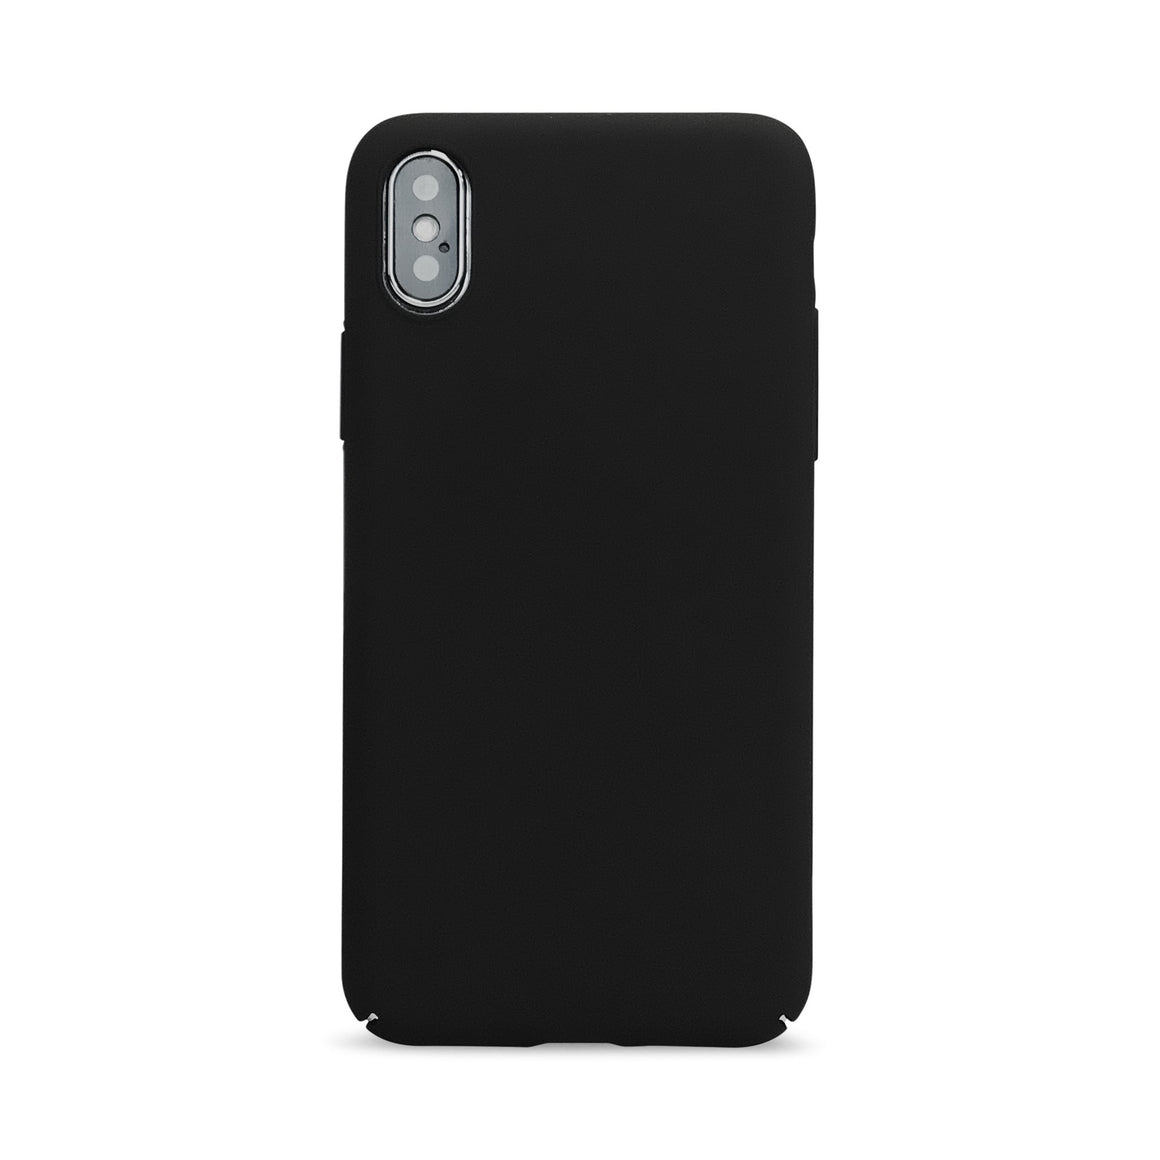 Classic iPhone X Armor - LuxArmor | Ultra Thin Protective iPhone Cases